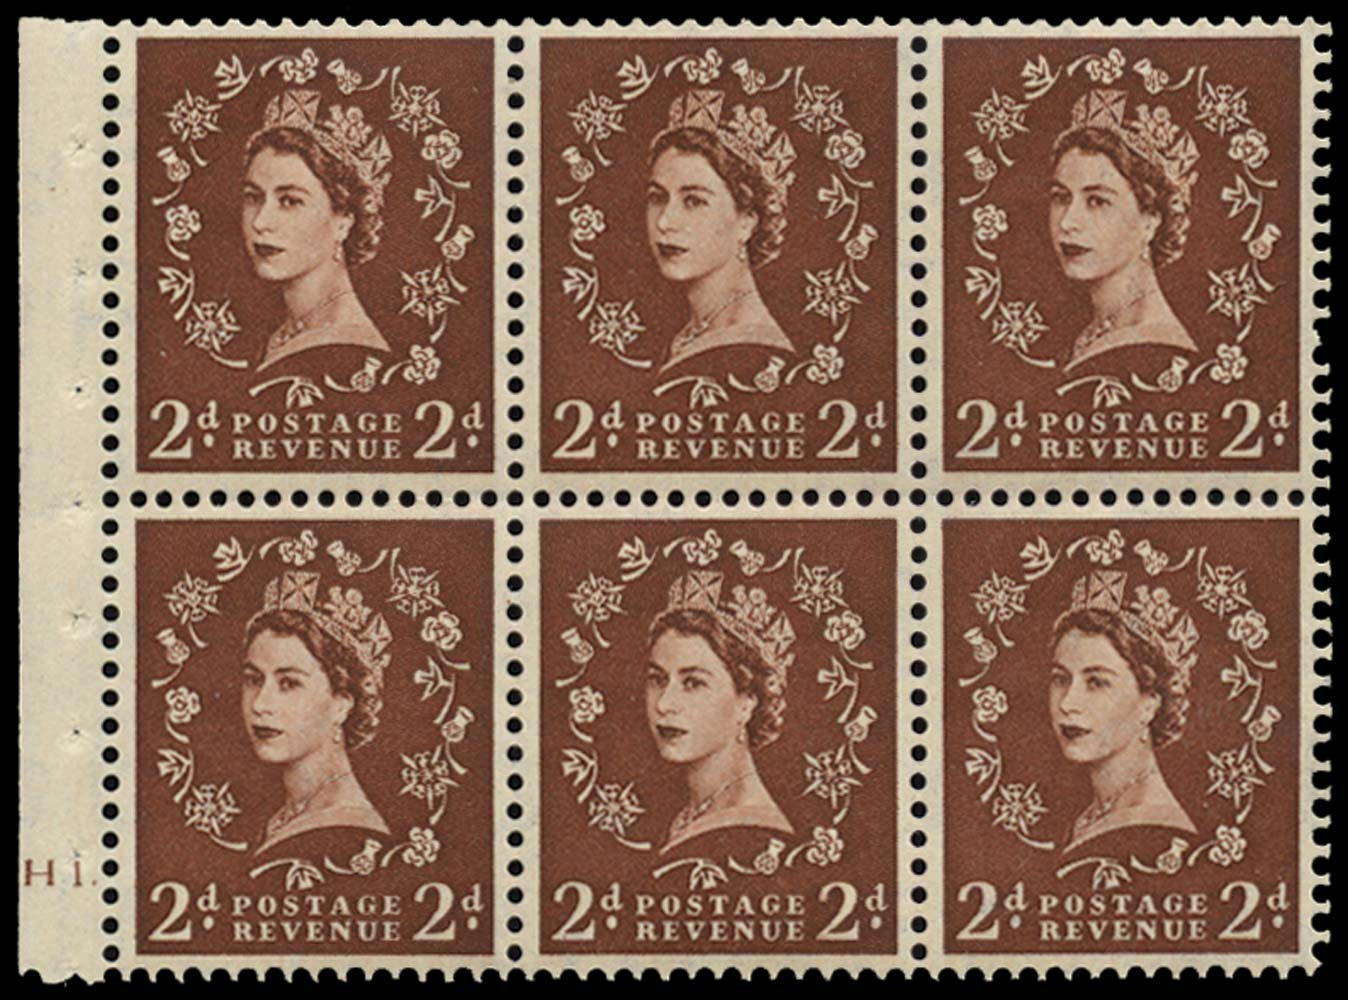 GB 1954  SG518l Booklet pane U/M